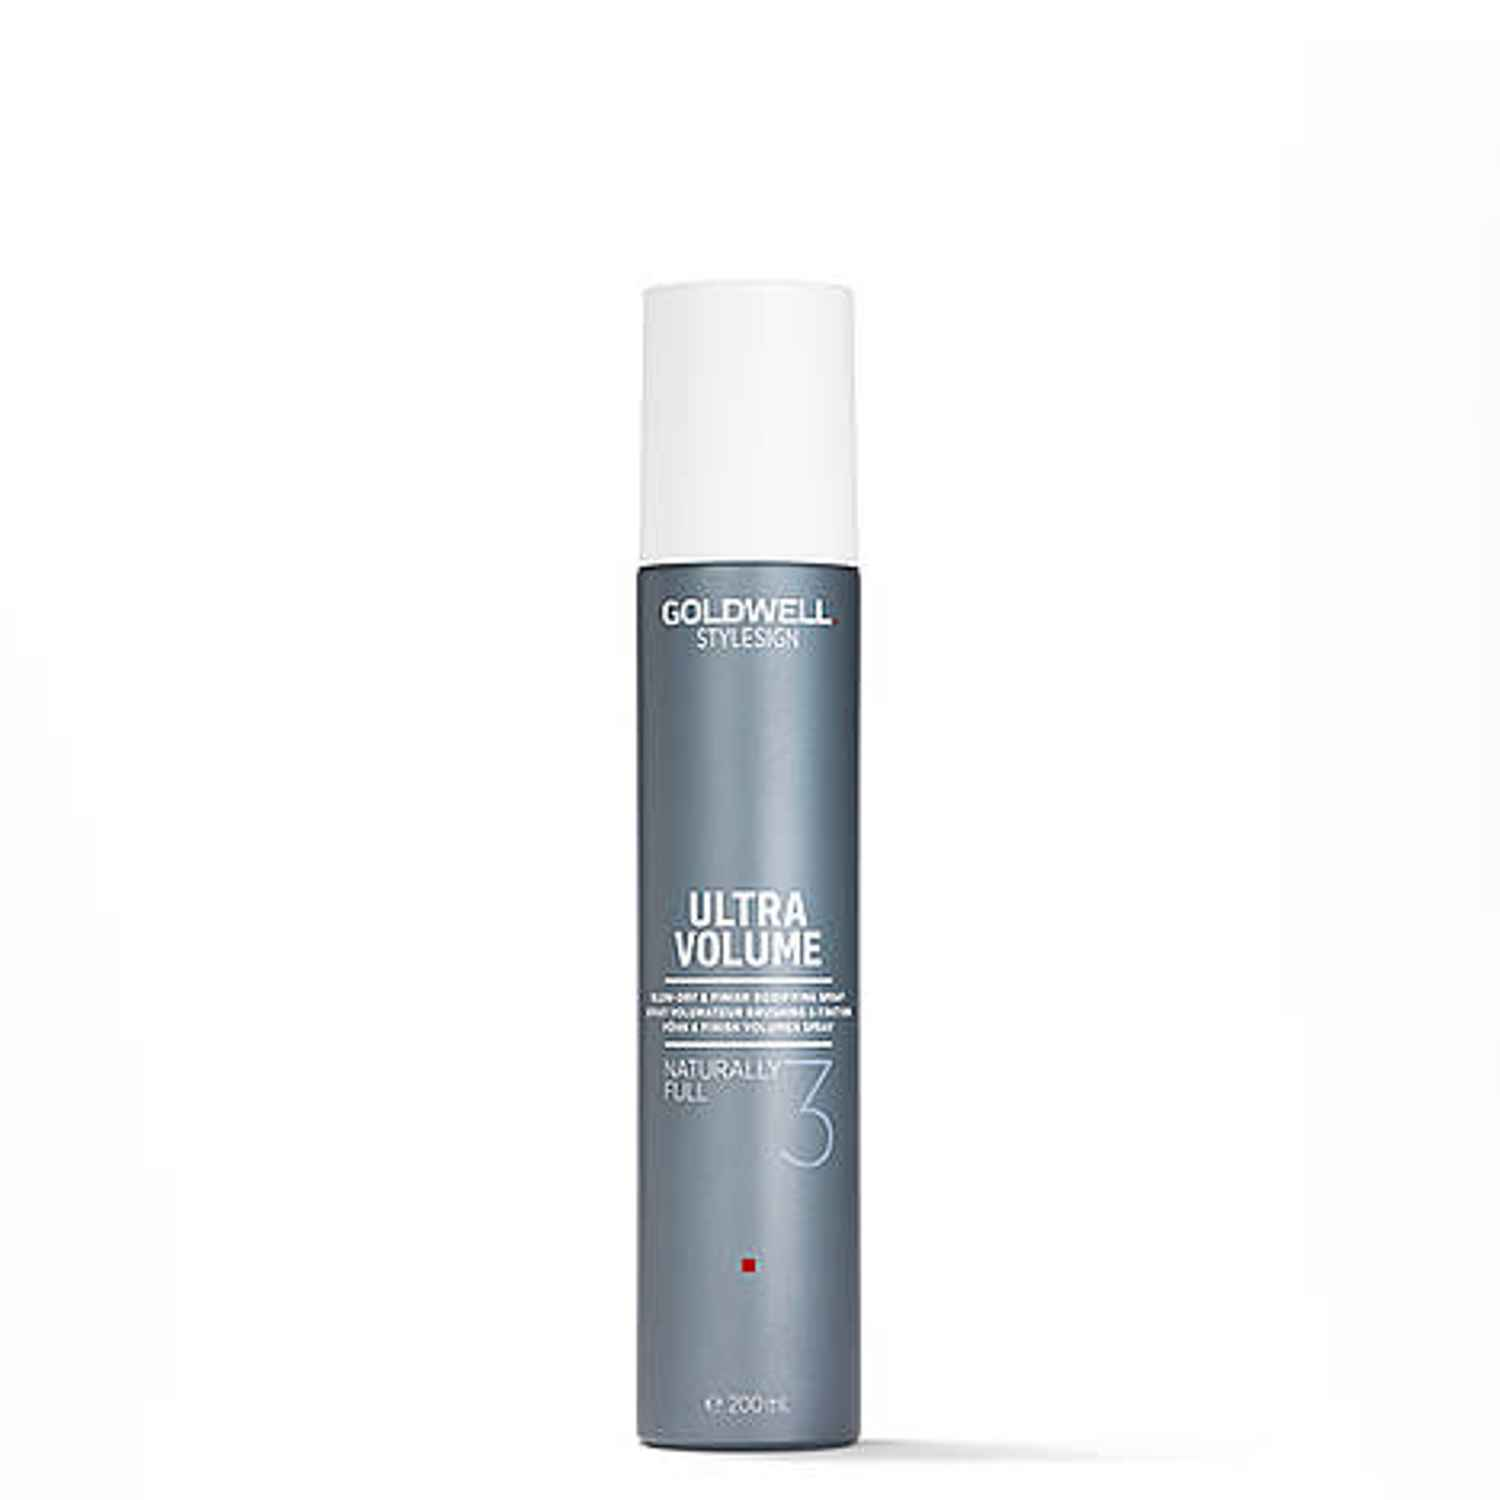 GOLDWELL Style Sign Ultra Volume NATURALLY FULL 200 ml